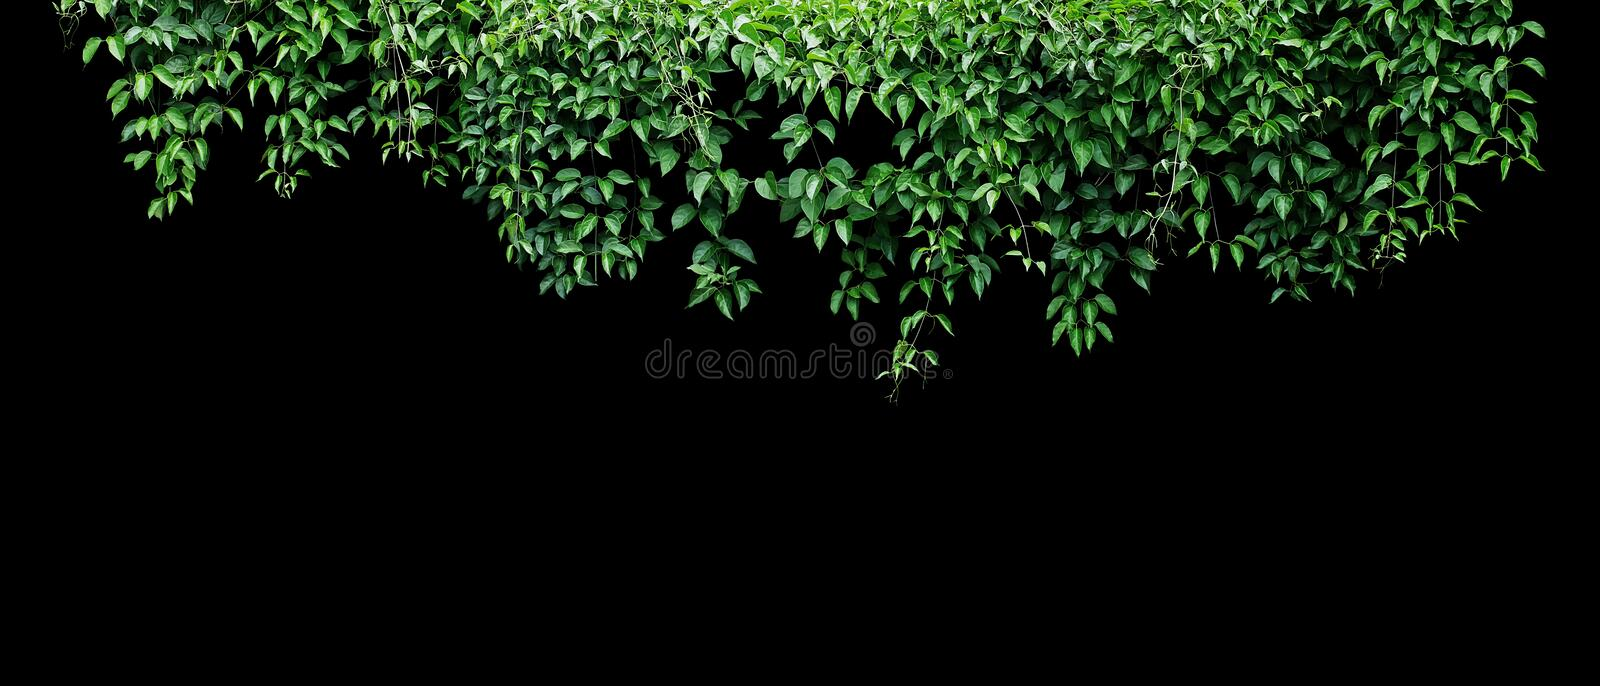 Hanging vines ivy foliage jungle bush, heart shaped green leaves climbing plant nature backdrop banner isolated on black. Background with clipping path stock images